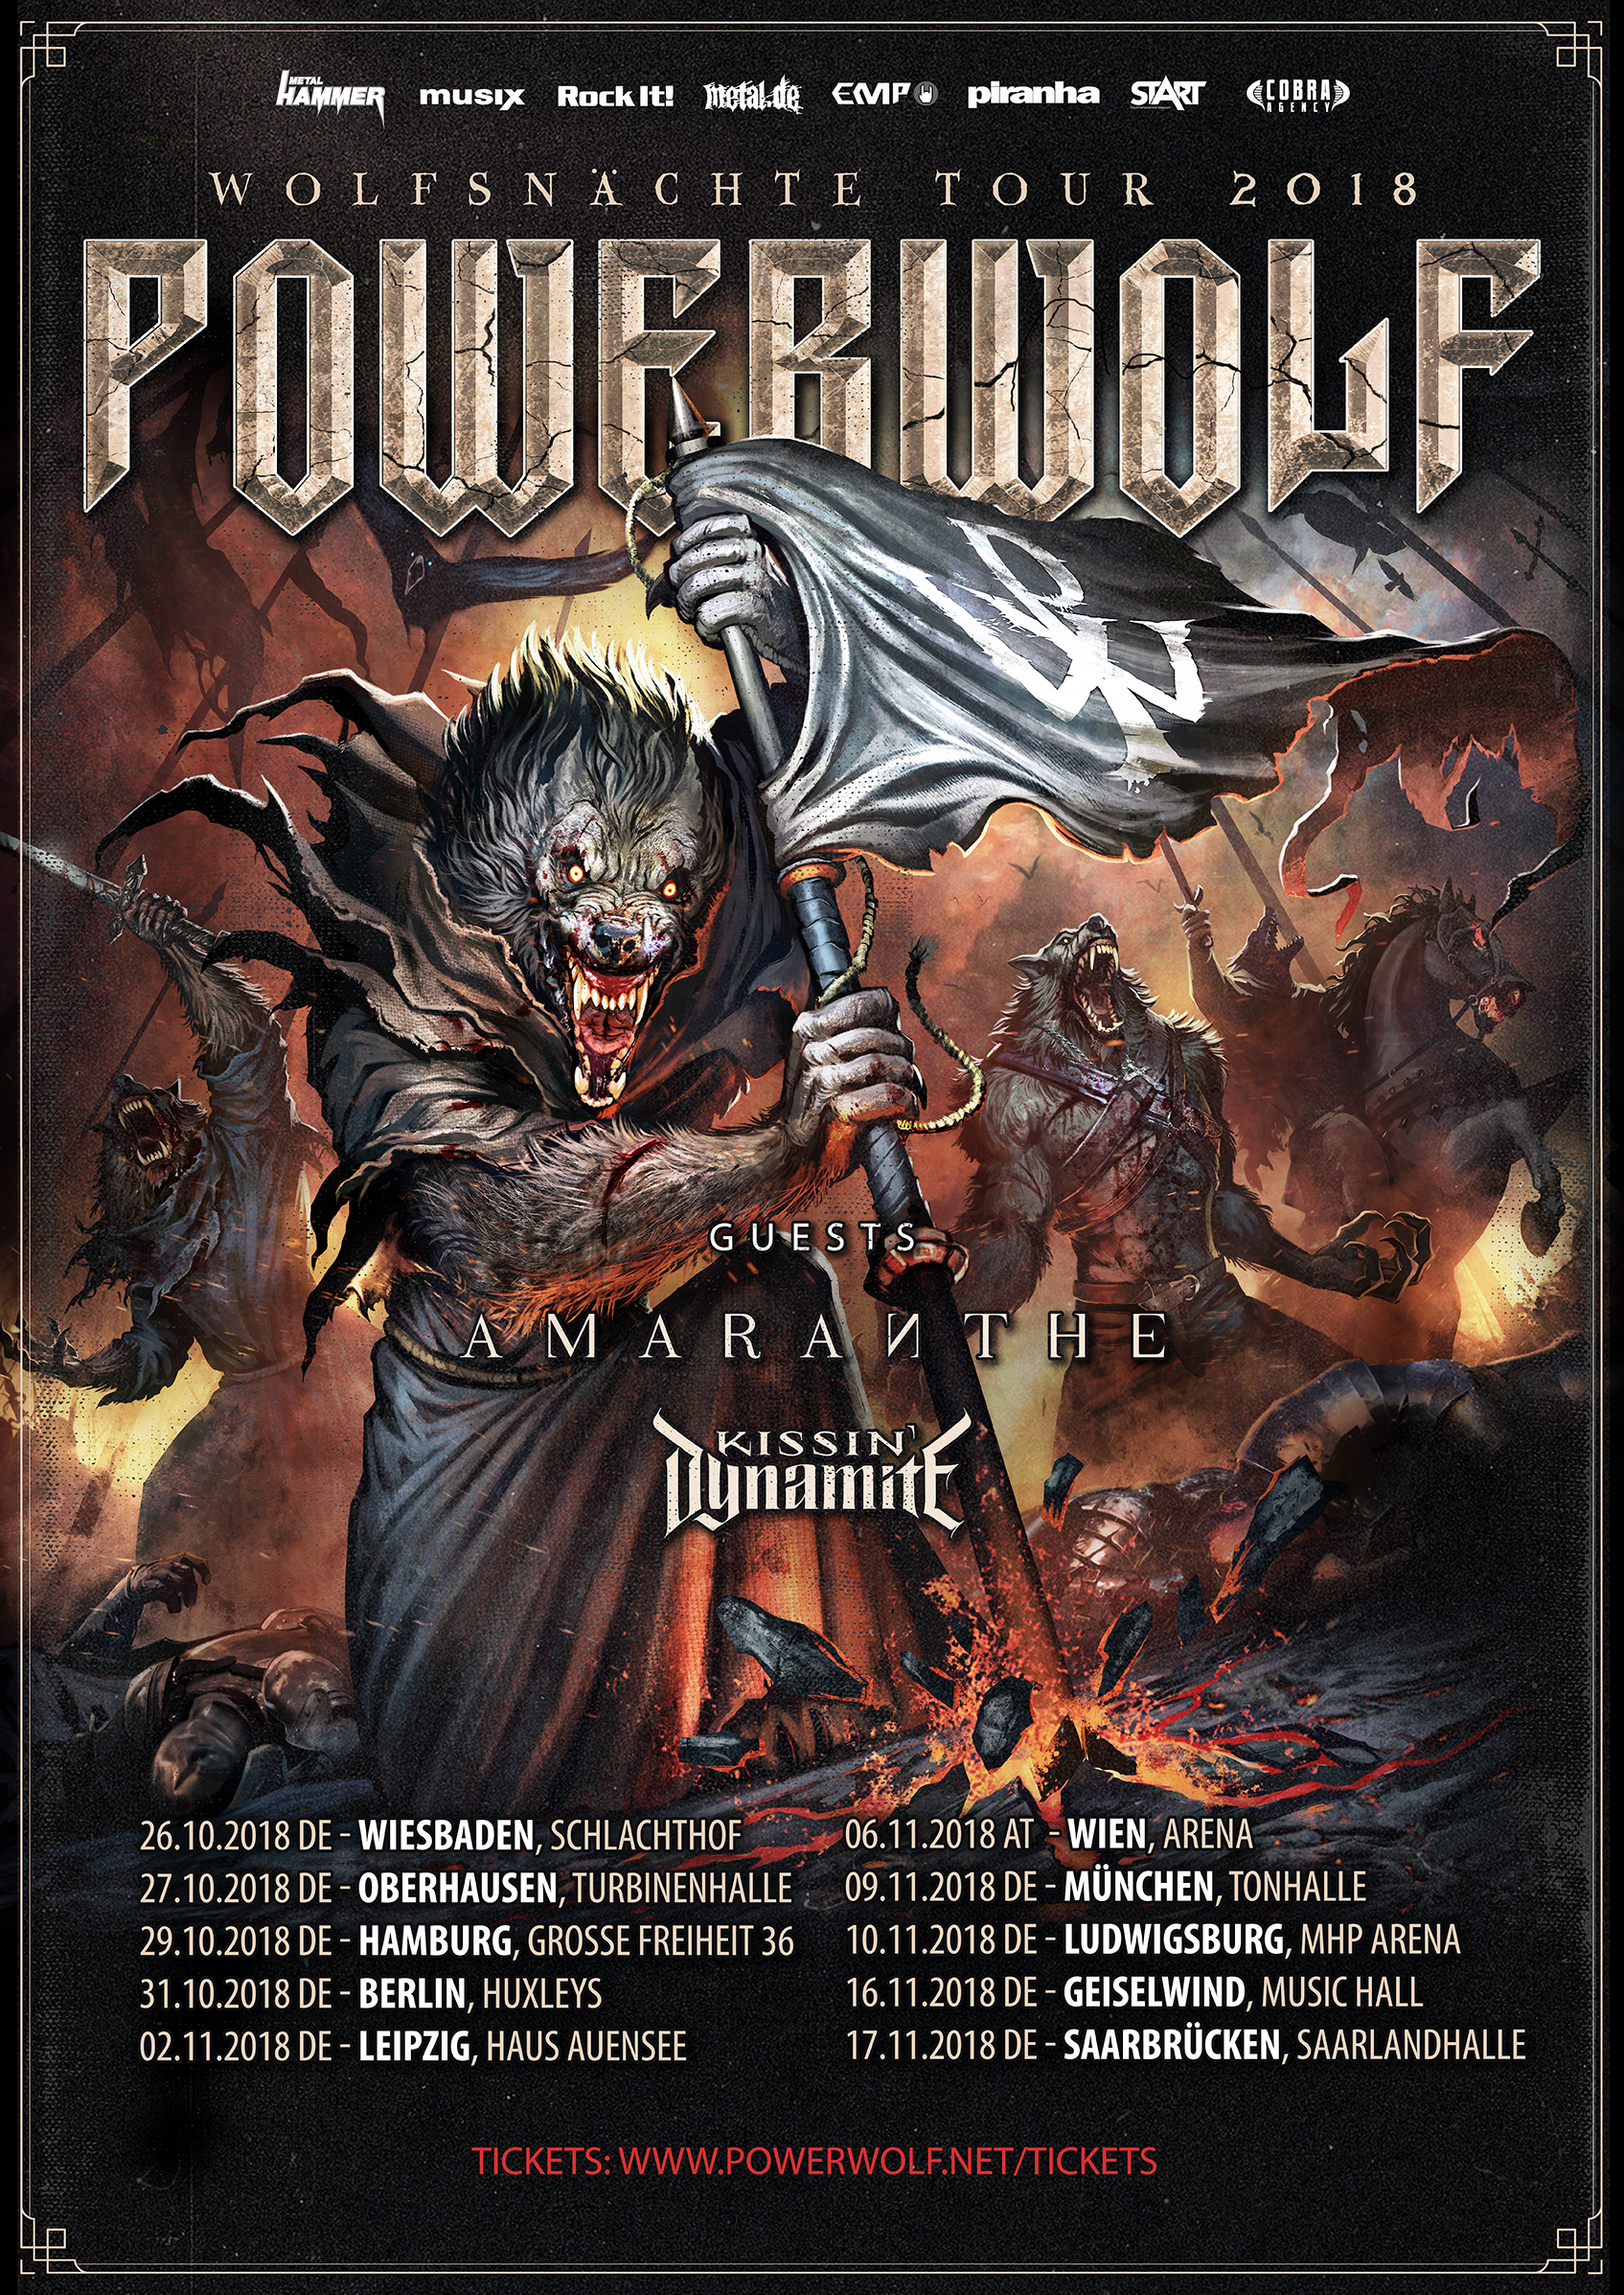 Powerwolf - Wolfsnächte Tour 2018